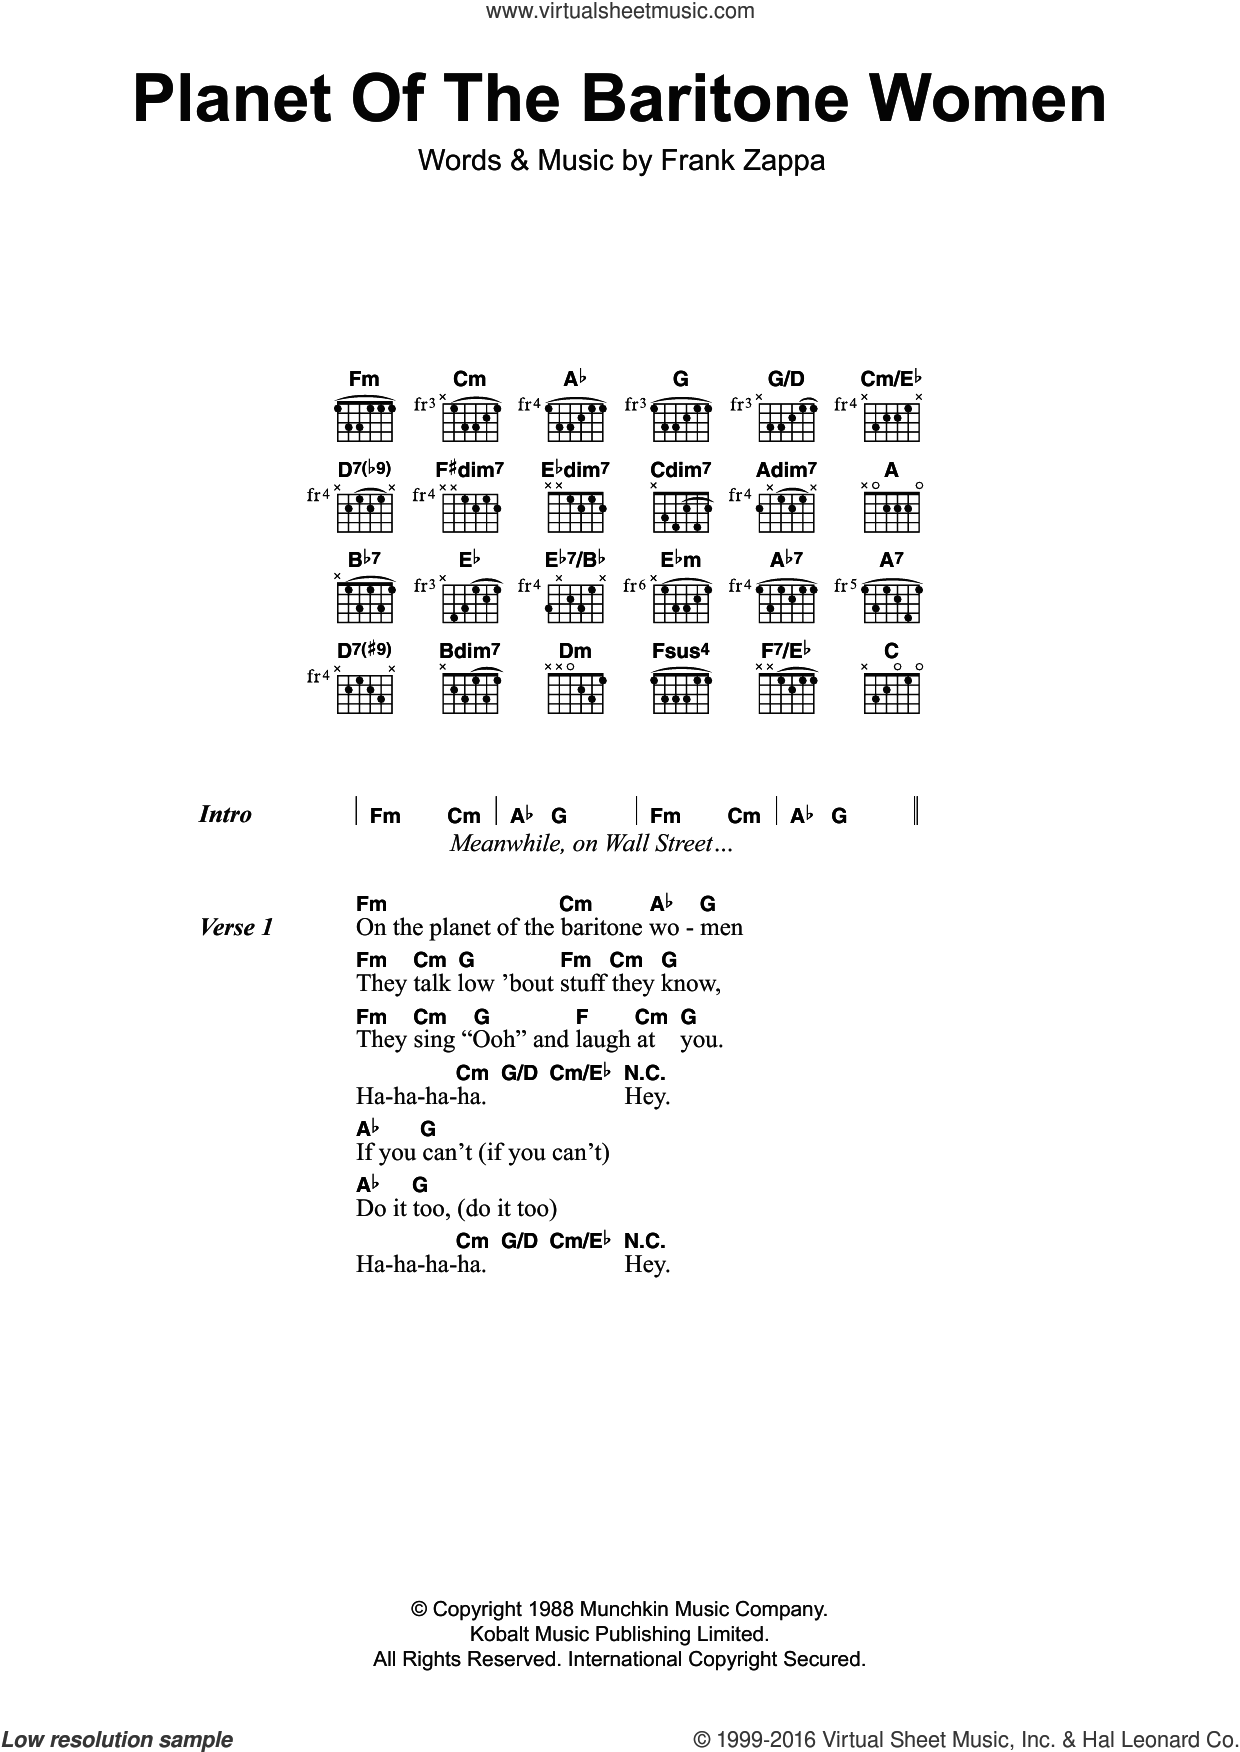 Planet Of The Baritone Women sheet music for guitar (chords) by Frank Zappa. Score Image Preview.